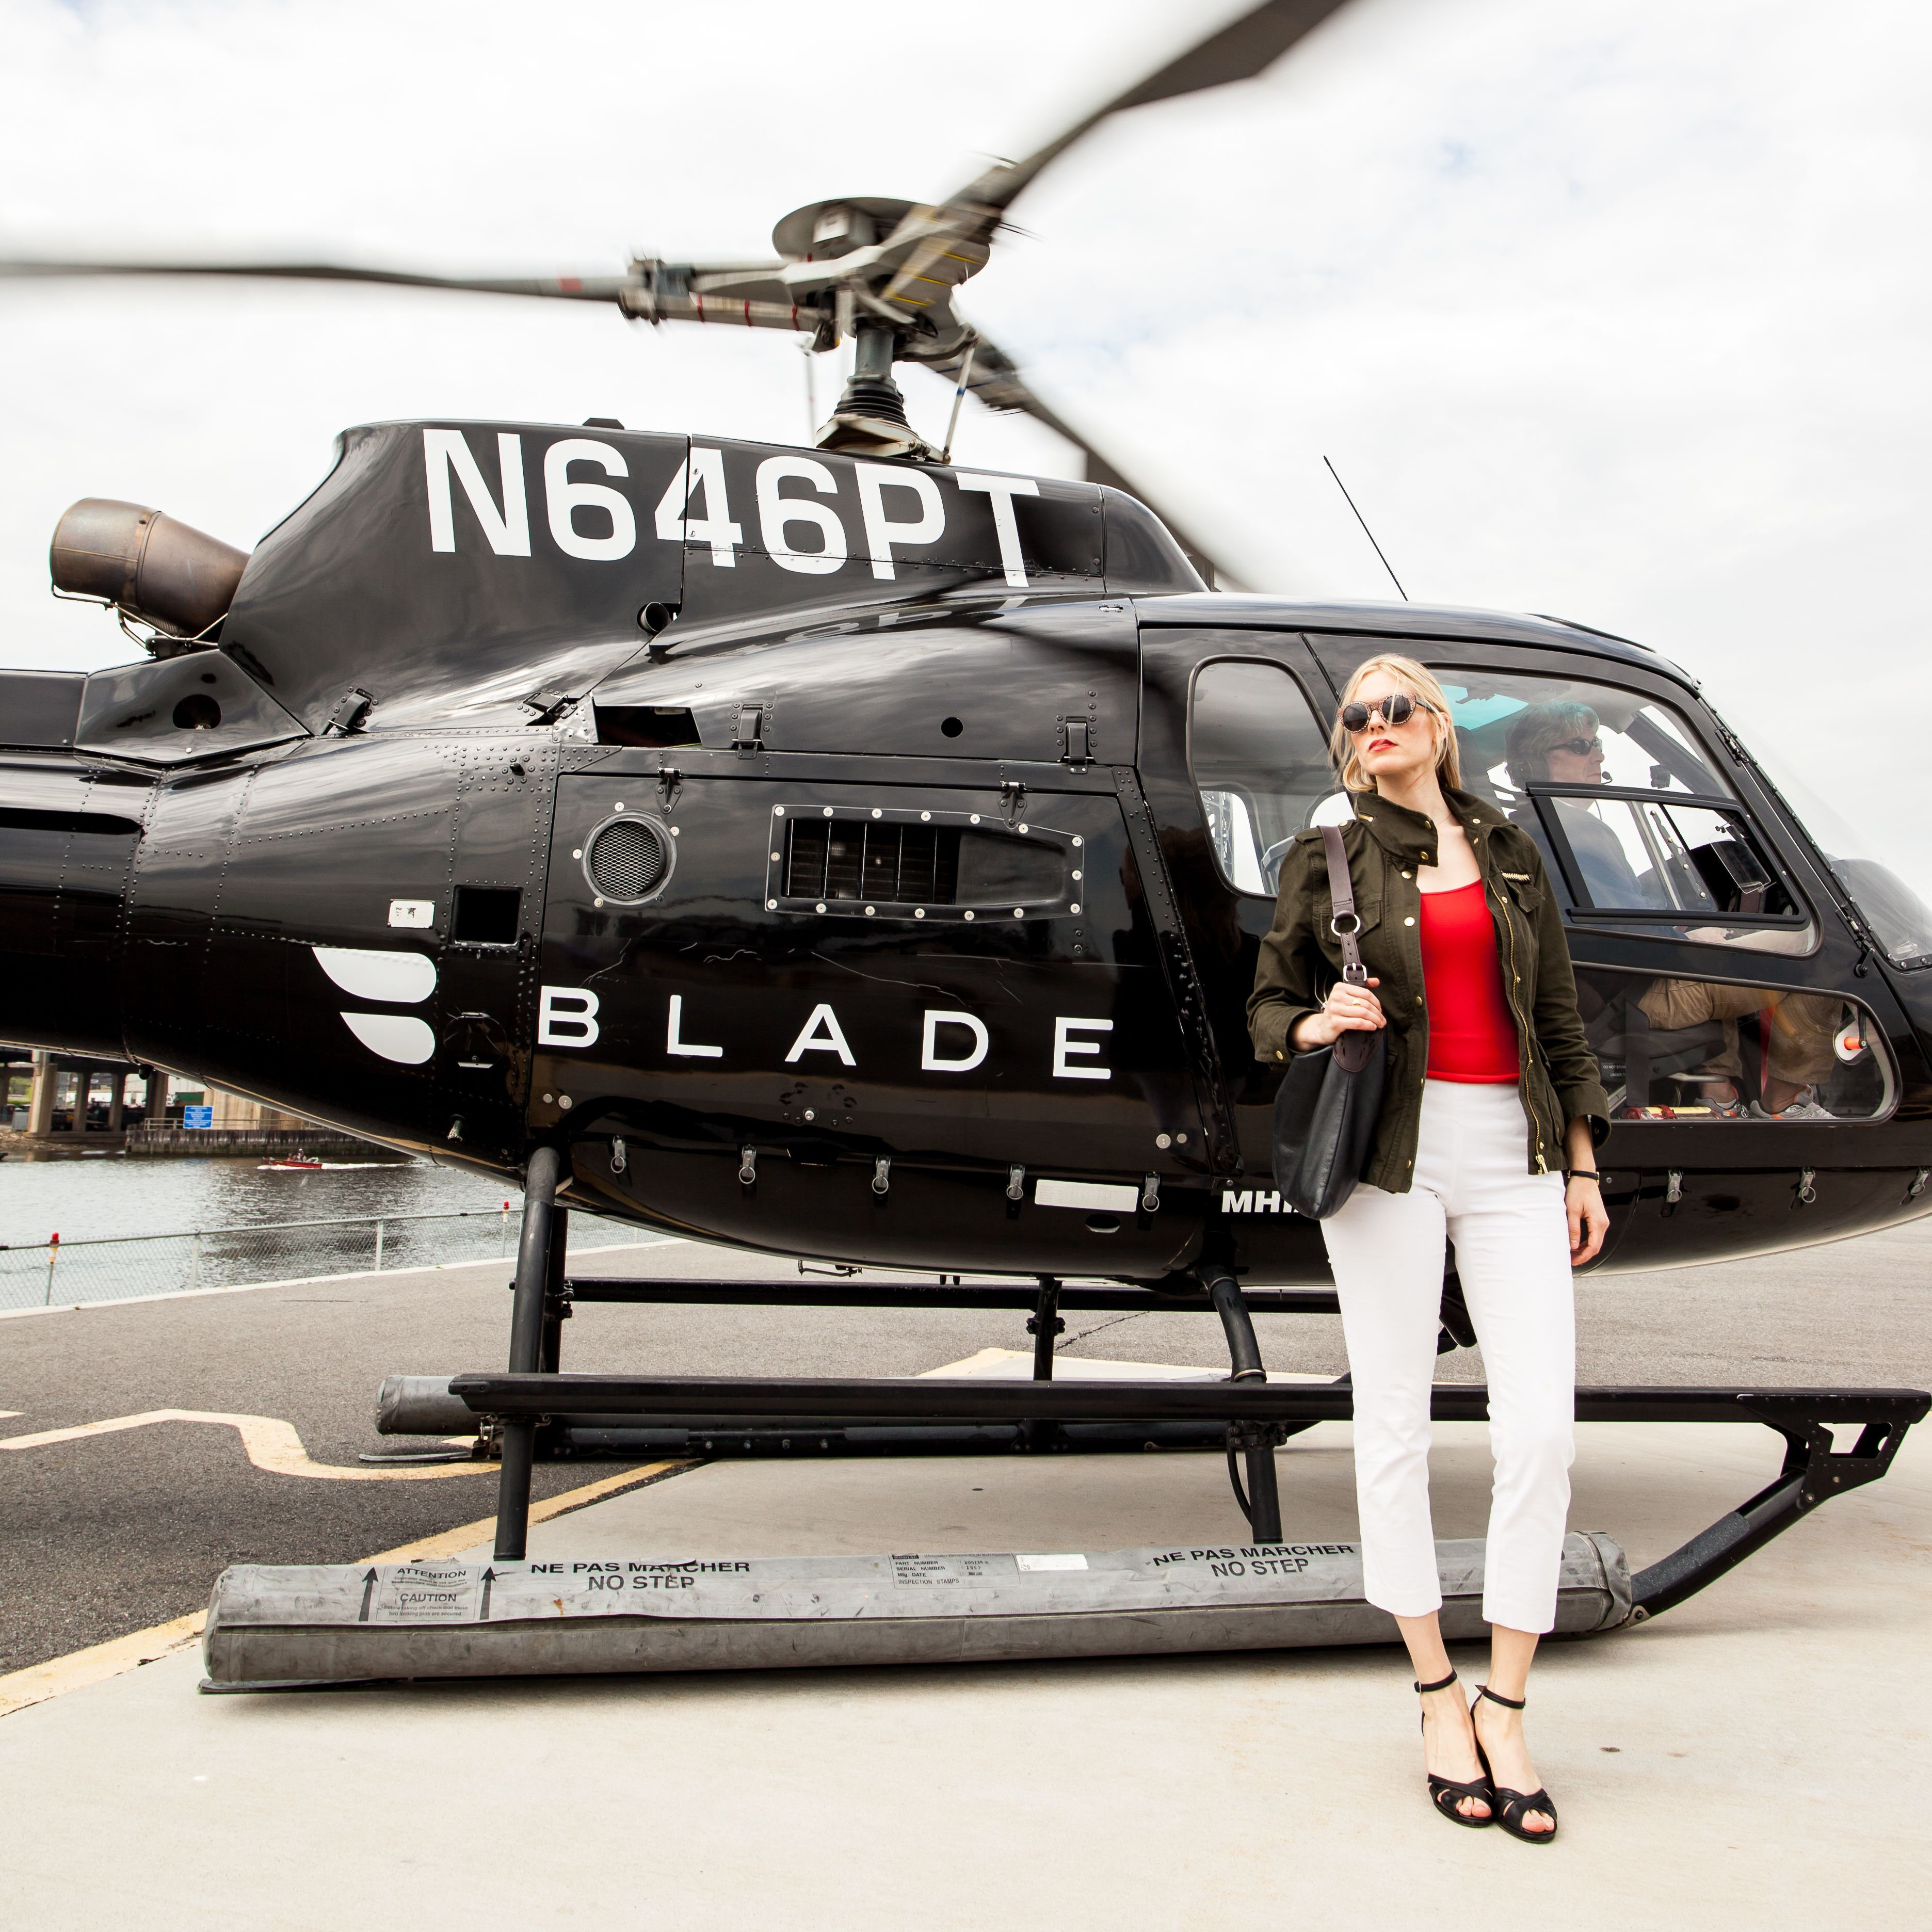 The race between Lyft, Uber Copter, Blade helicopter to JFK airport